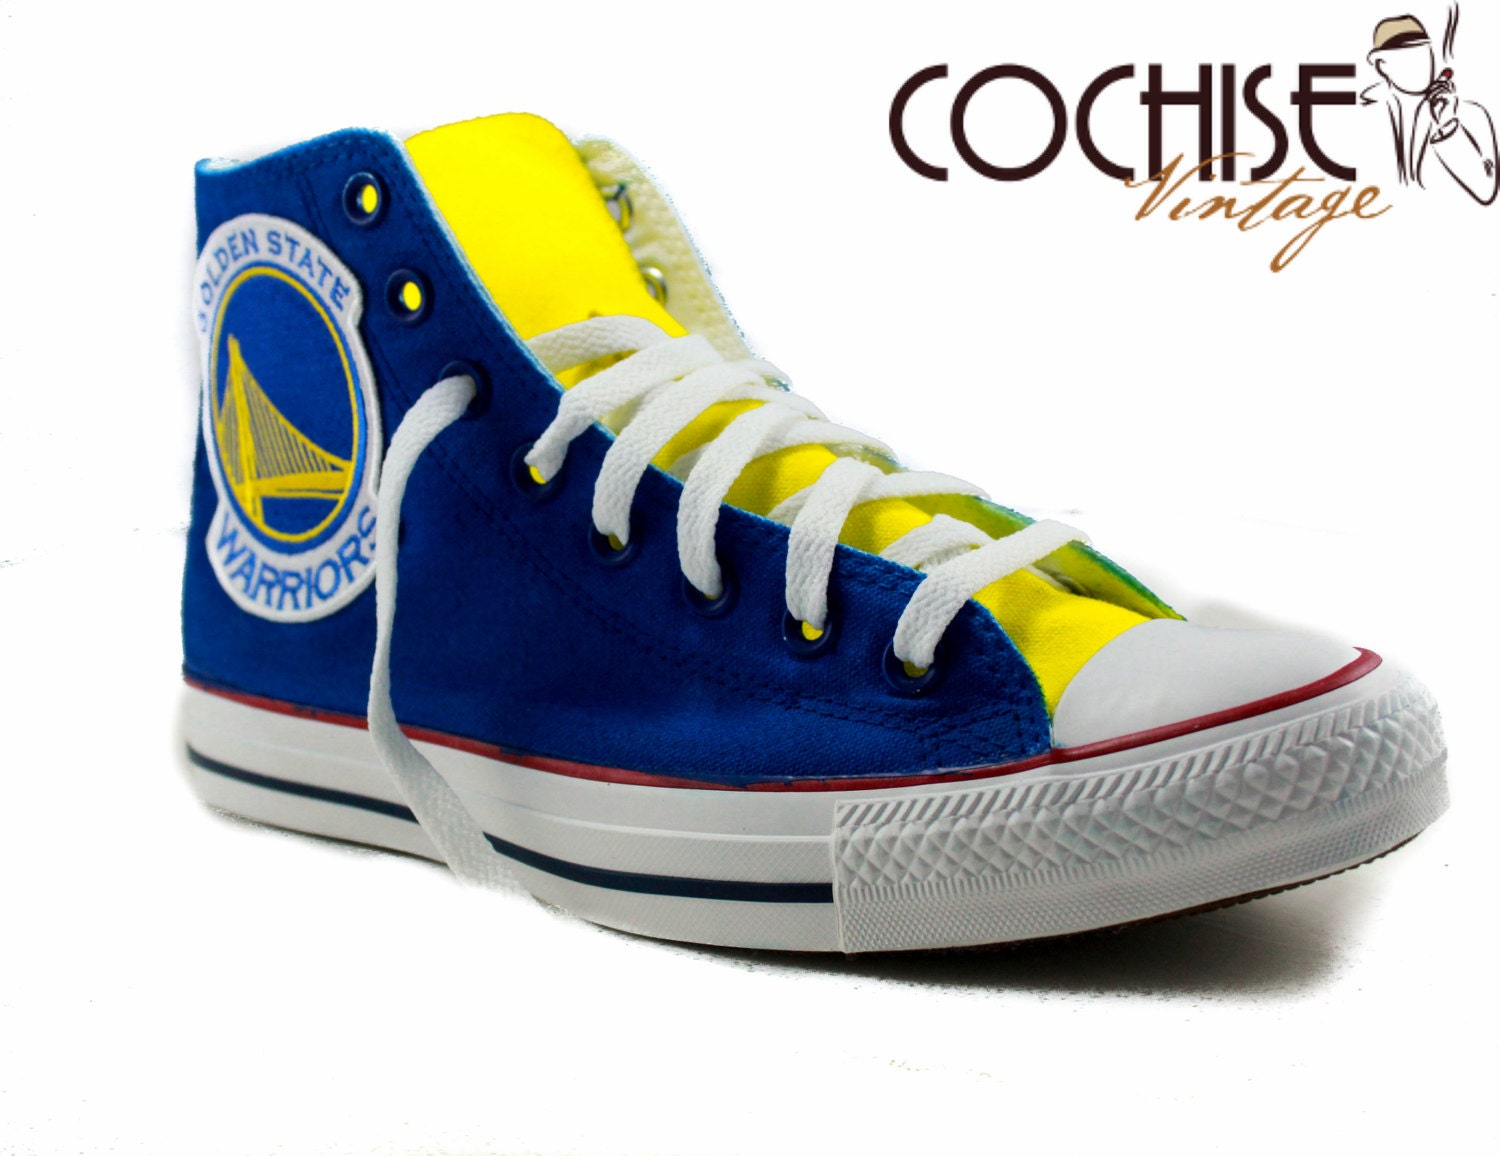 Golden State Warrior Custom Airbrush Converse By